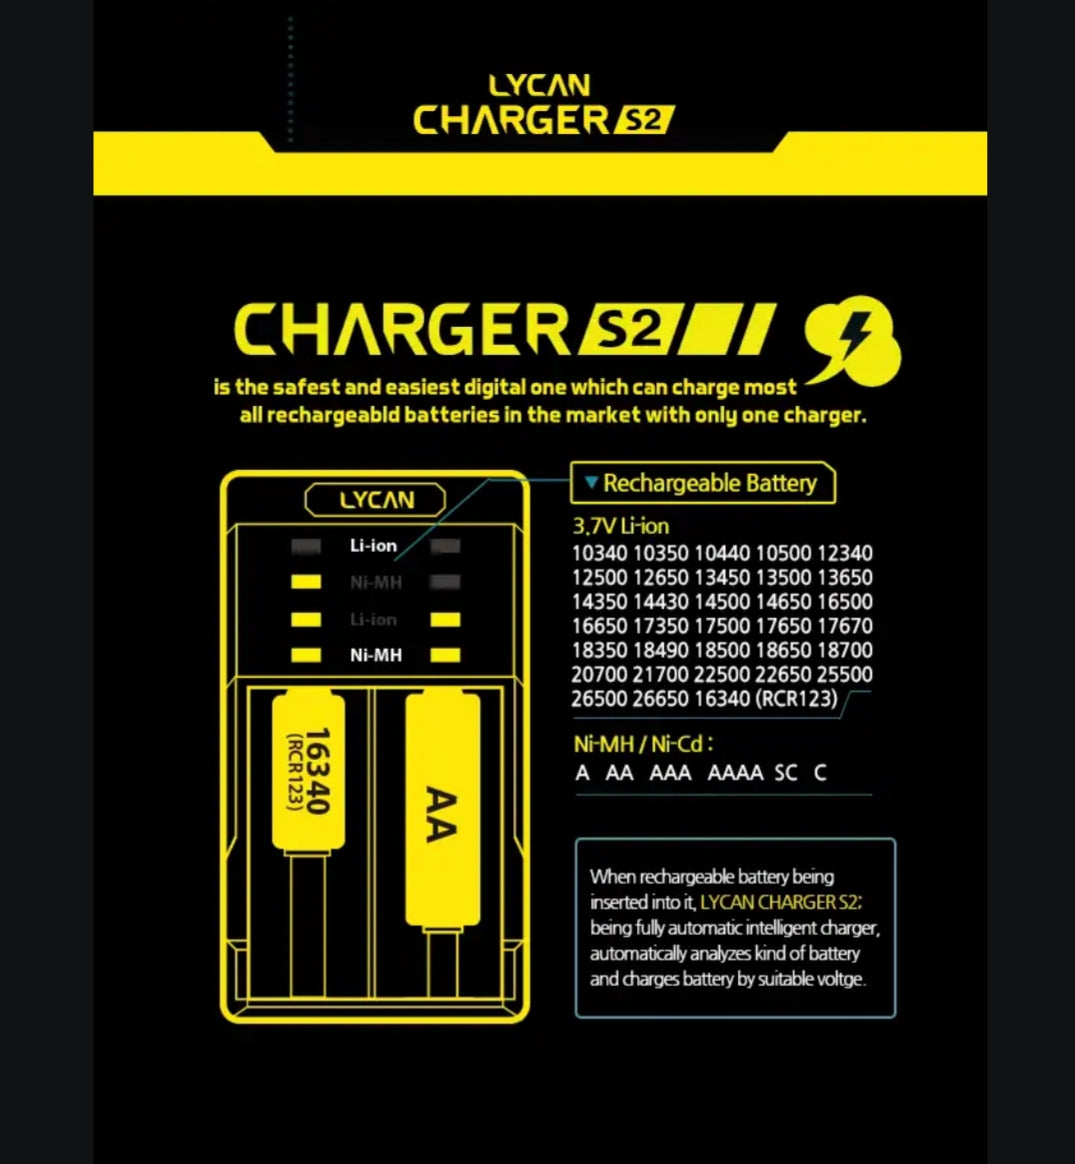 Lycan Charger S2